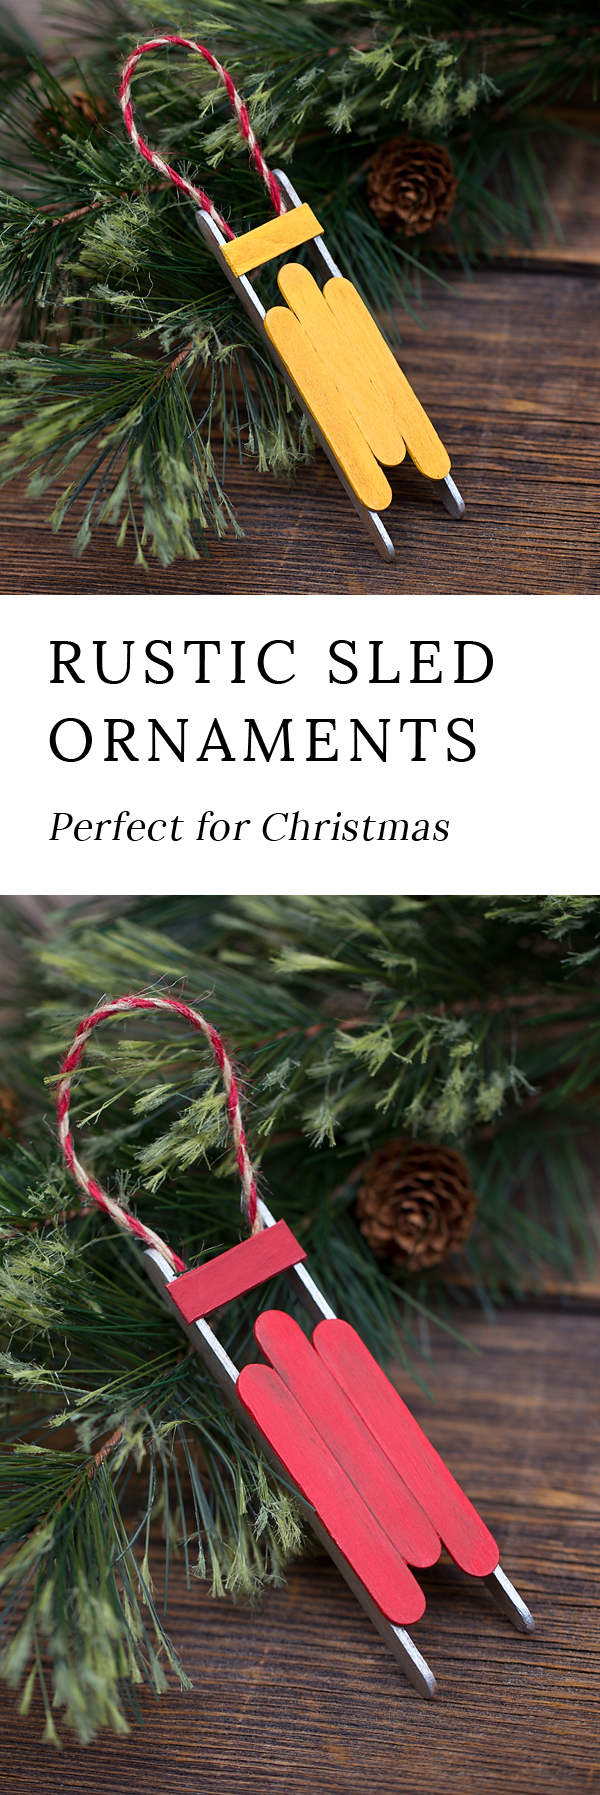 Just in time for Christmas, learn how to make a Rustic Wooden Sled Ornament with craft sticks, glue, and paint. This easy holiday craft is perfect for home or school!